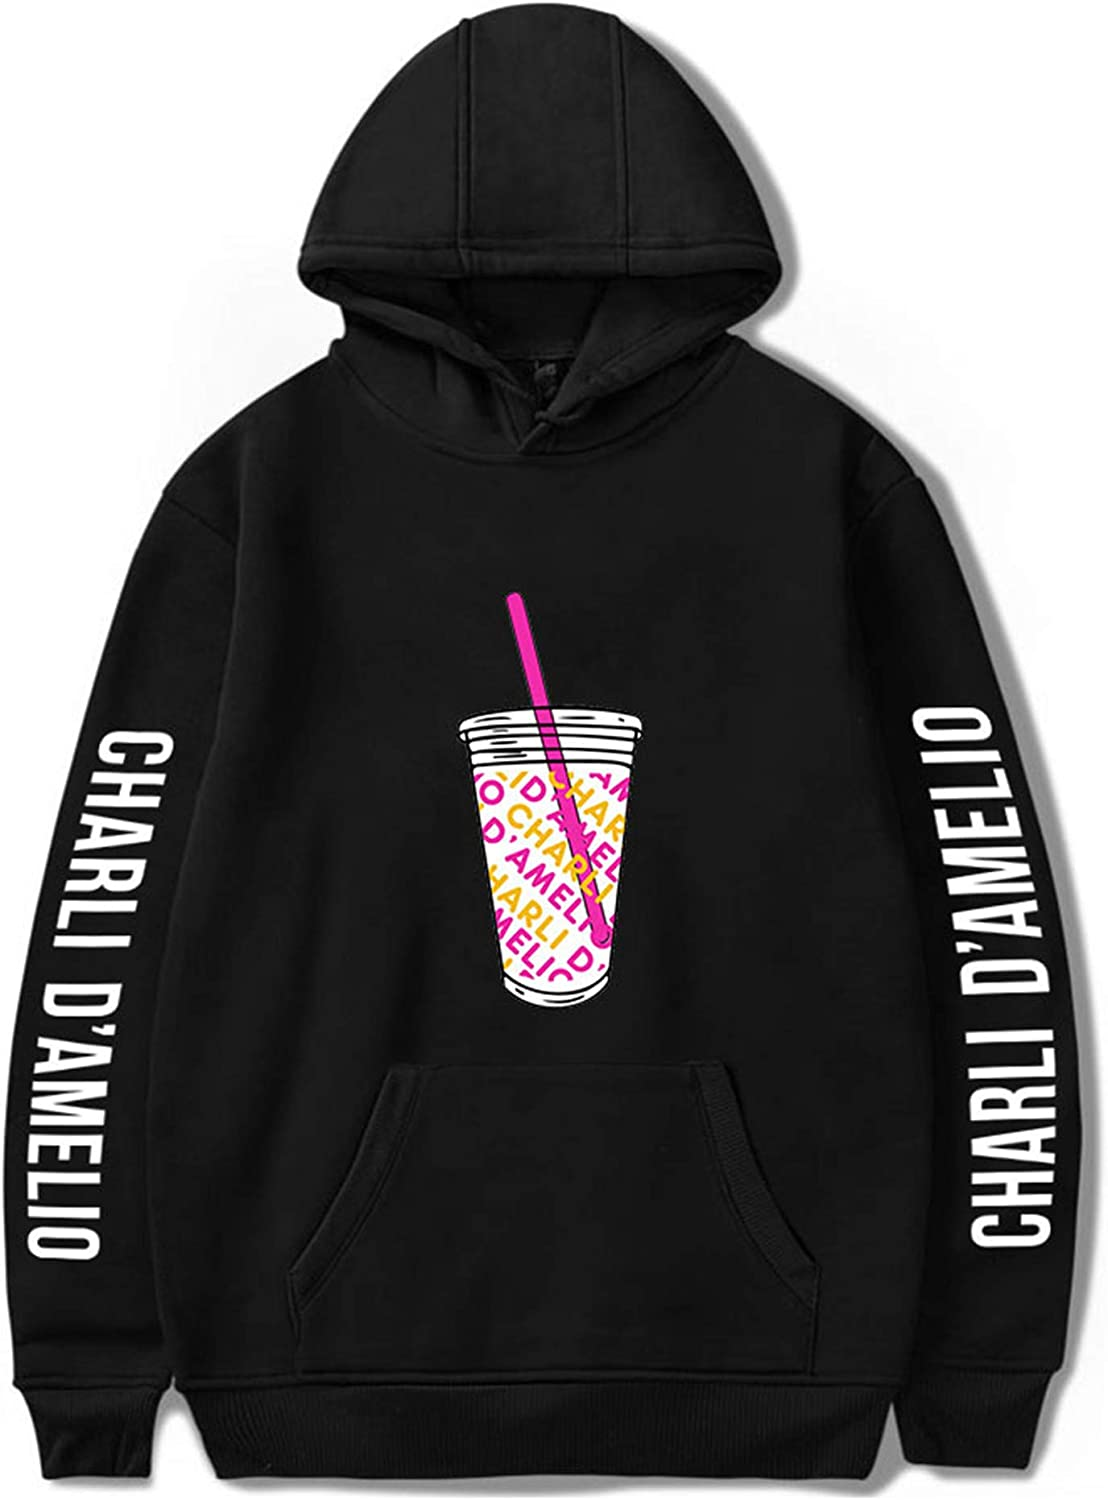 FGYUI Charli D'Amelio Hoodie Pullover Sweatshirt Sweater for  Youth/Mens/Womens: Amazon.ca: Clothing & Accessories